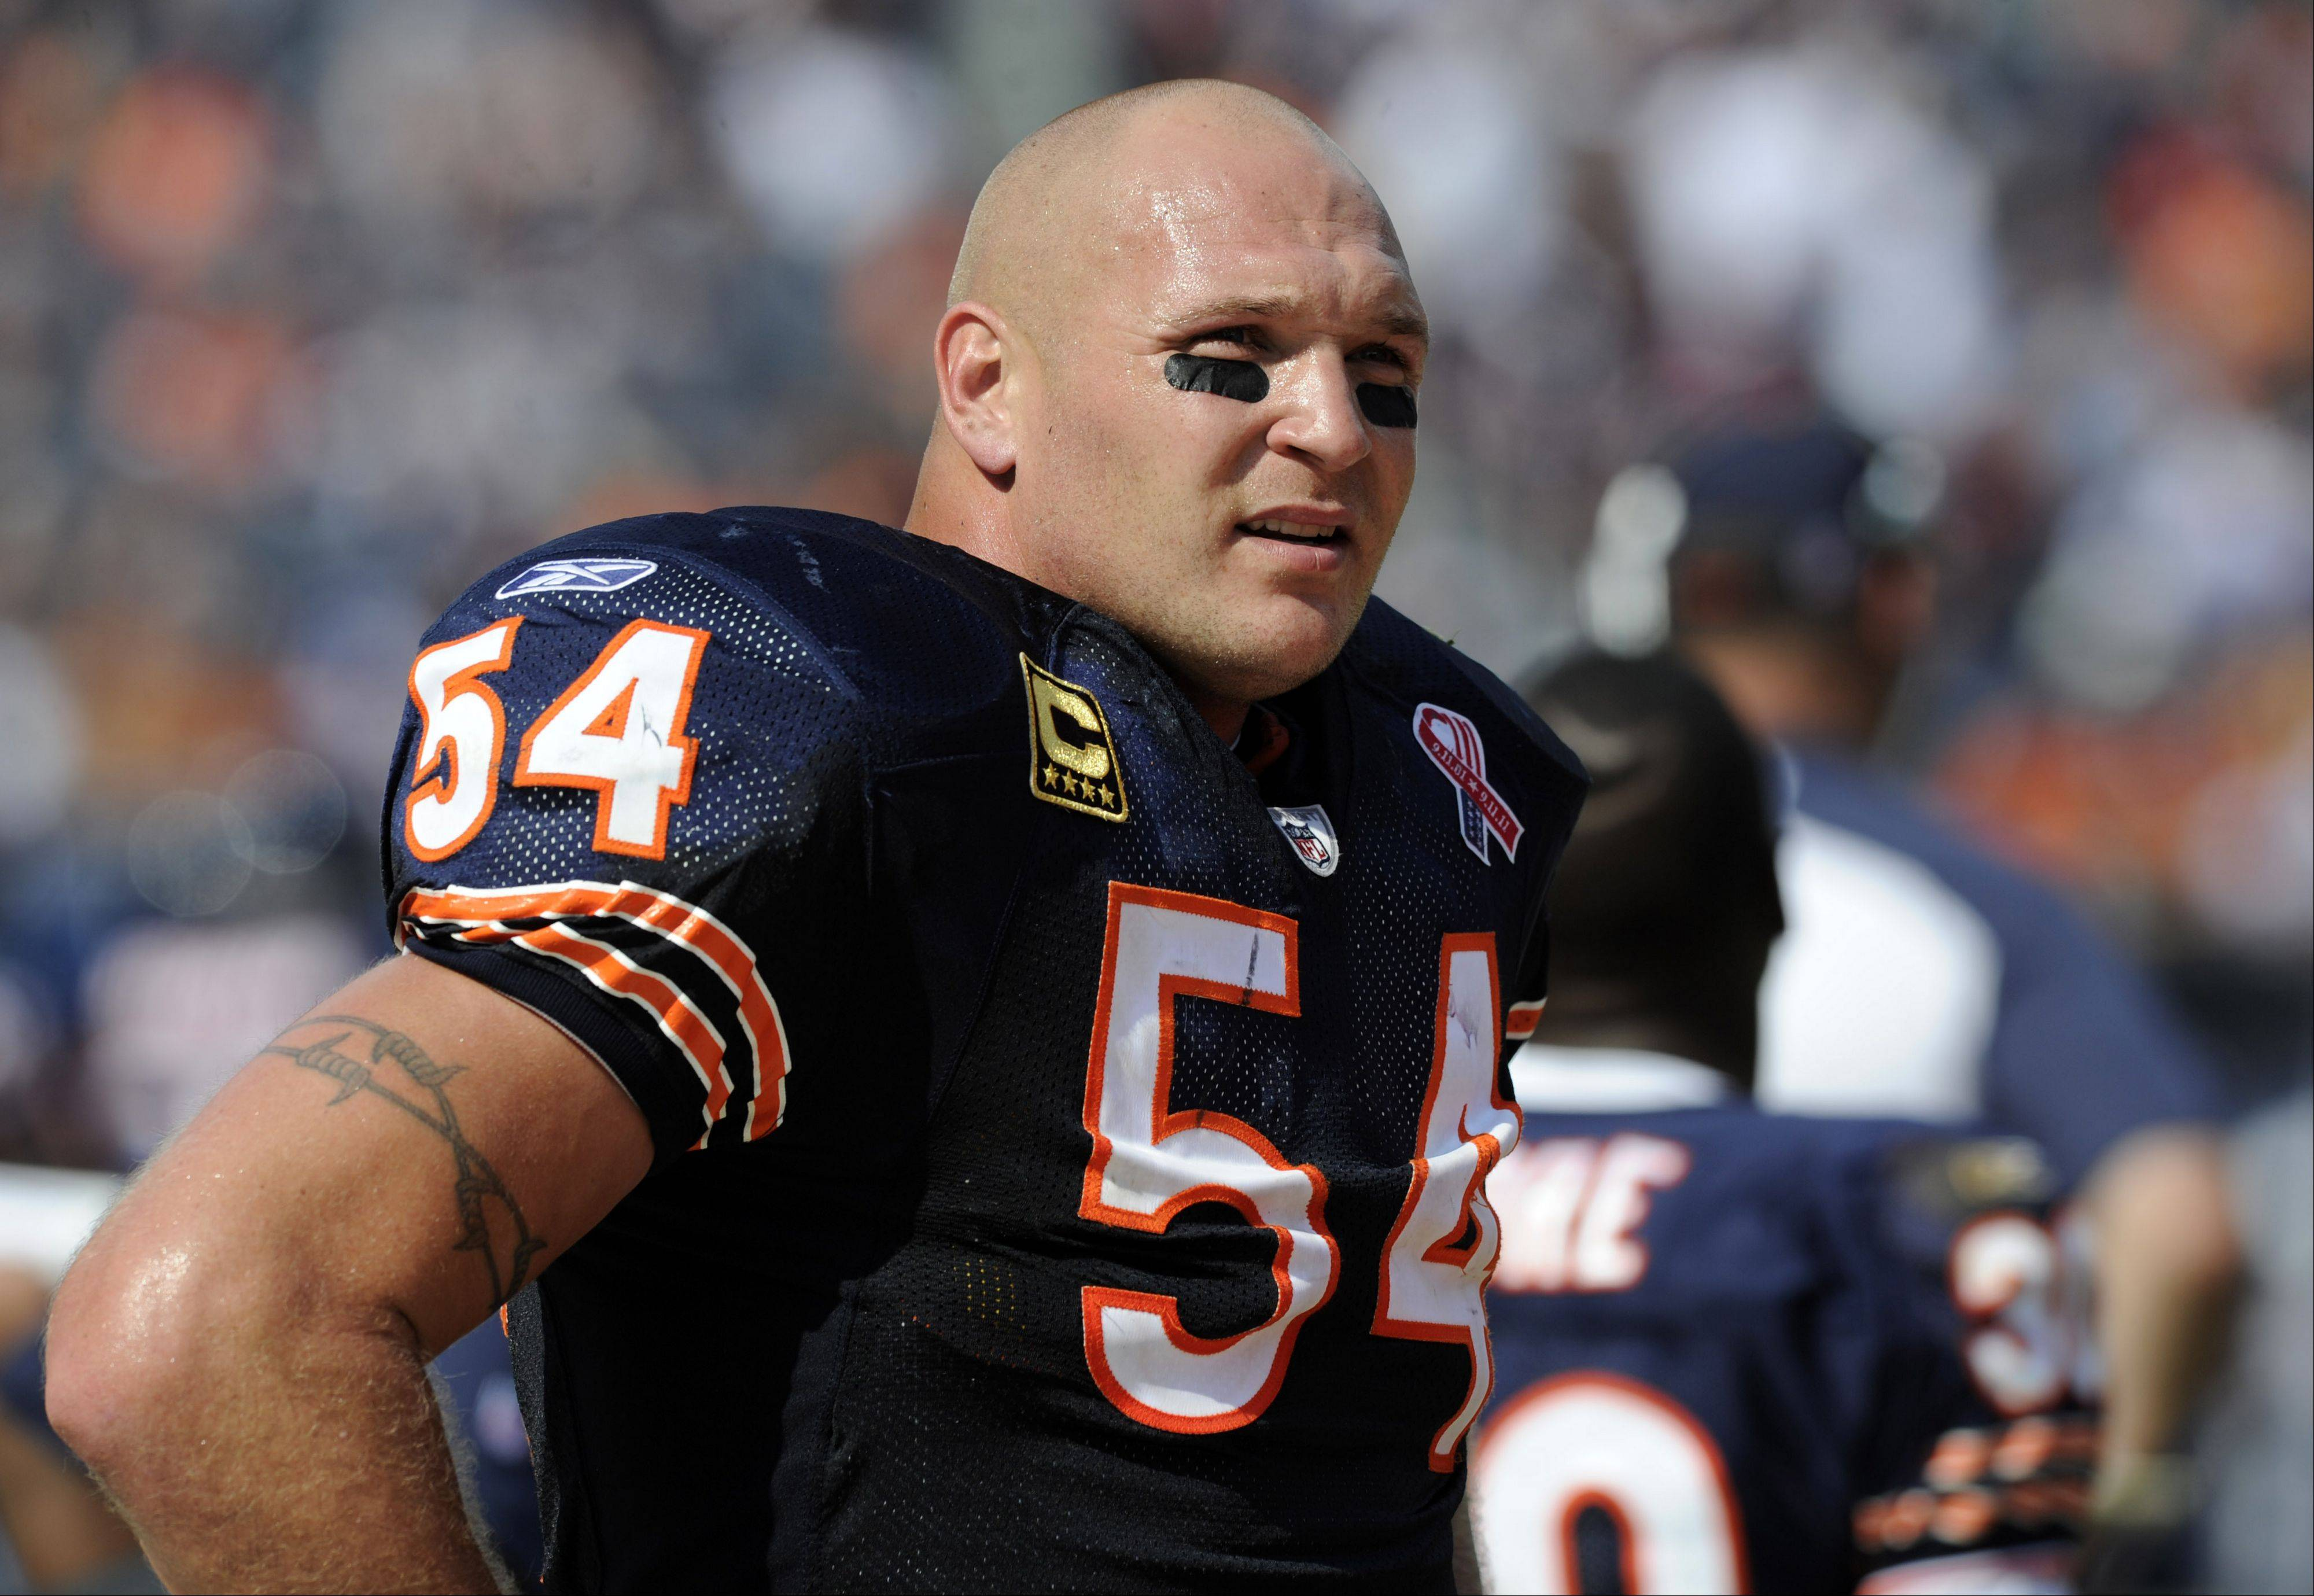 Bears comfort Urlacher after mom's death